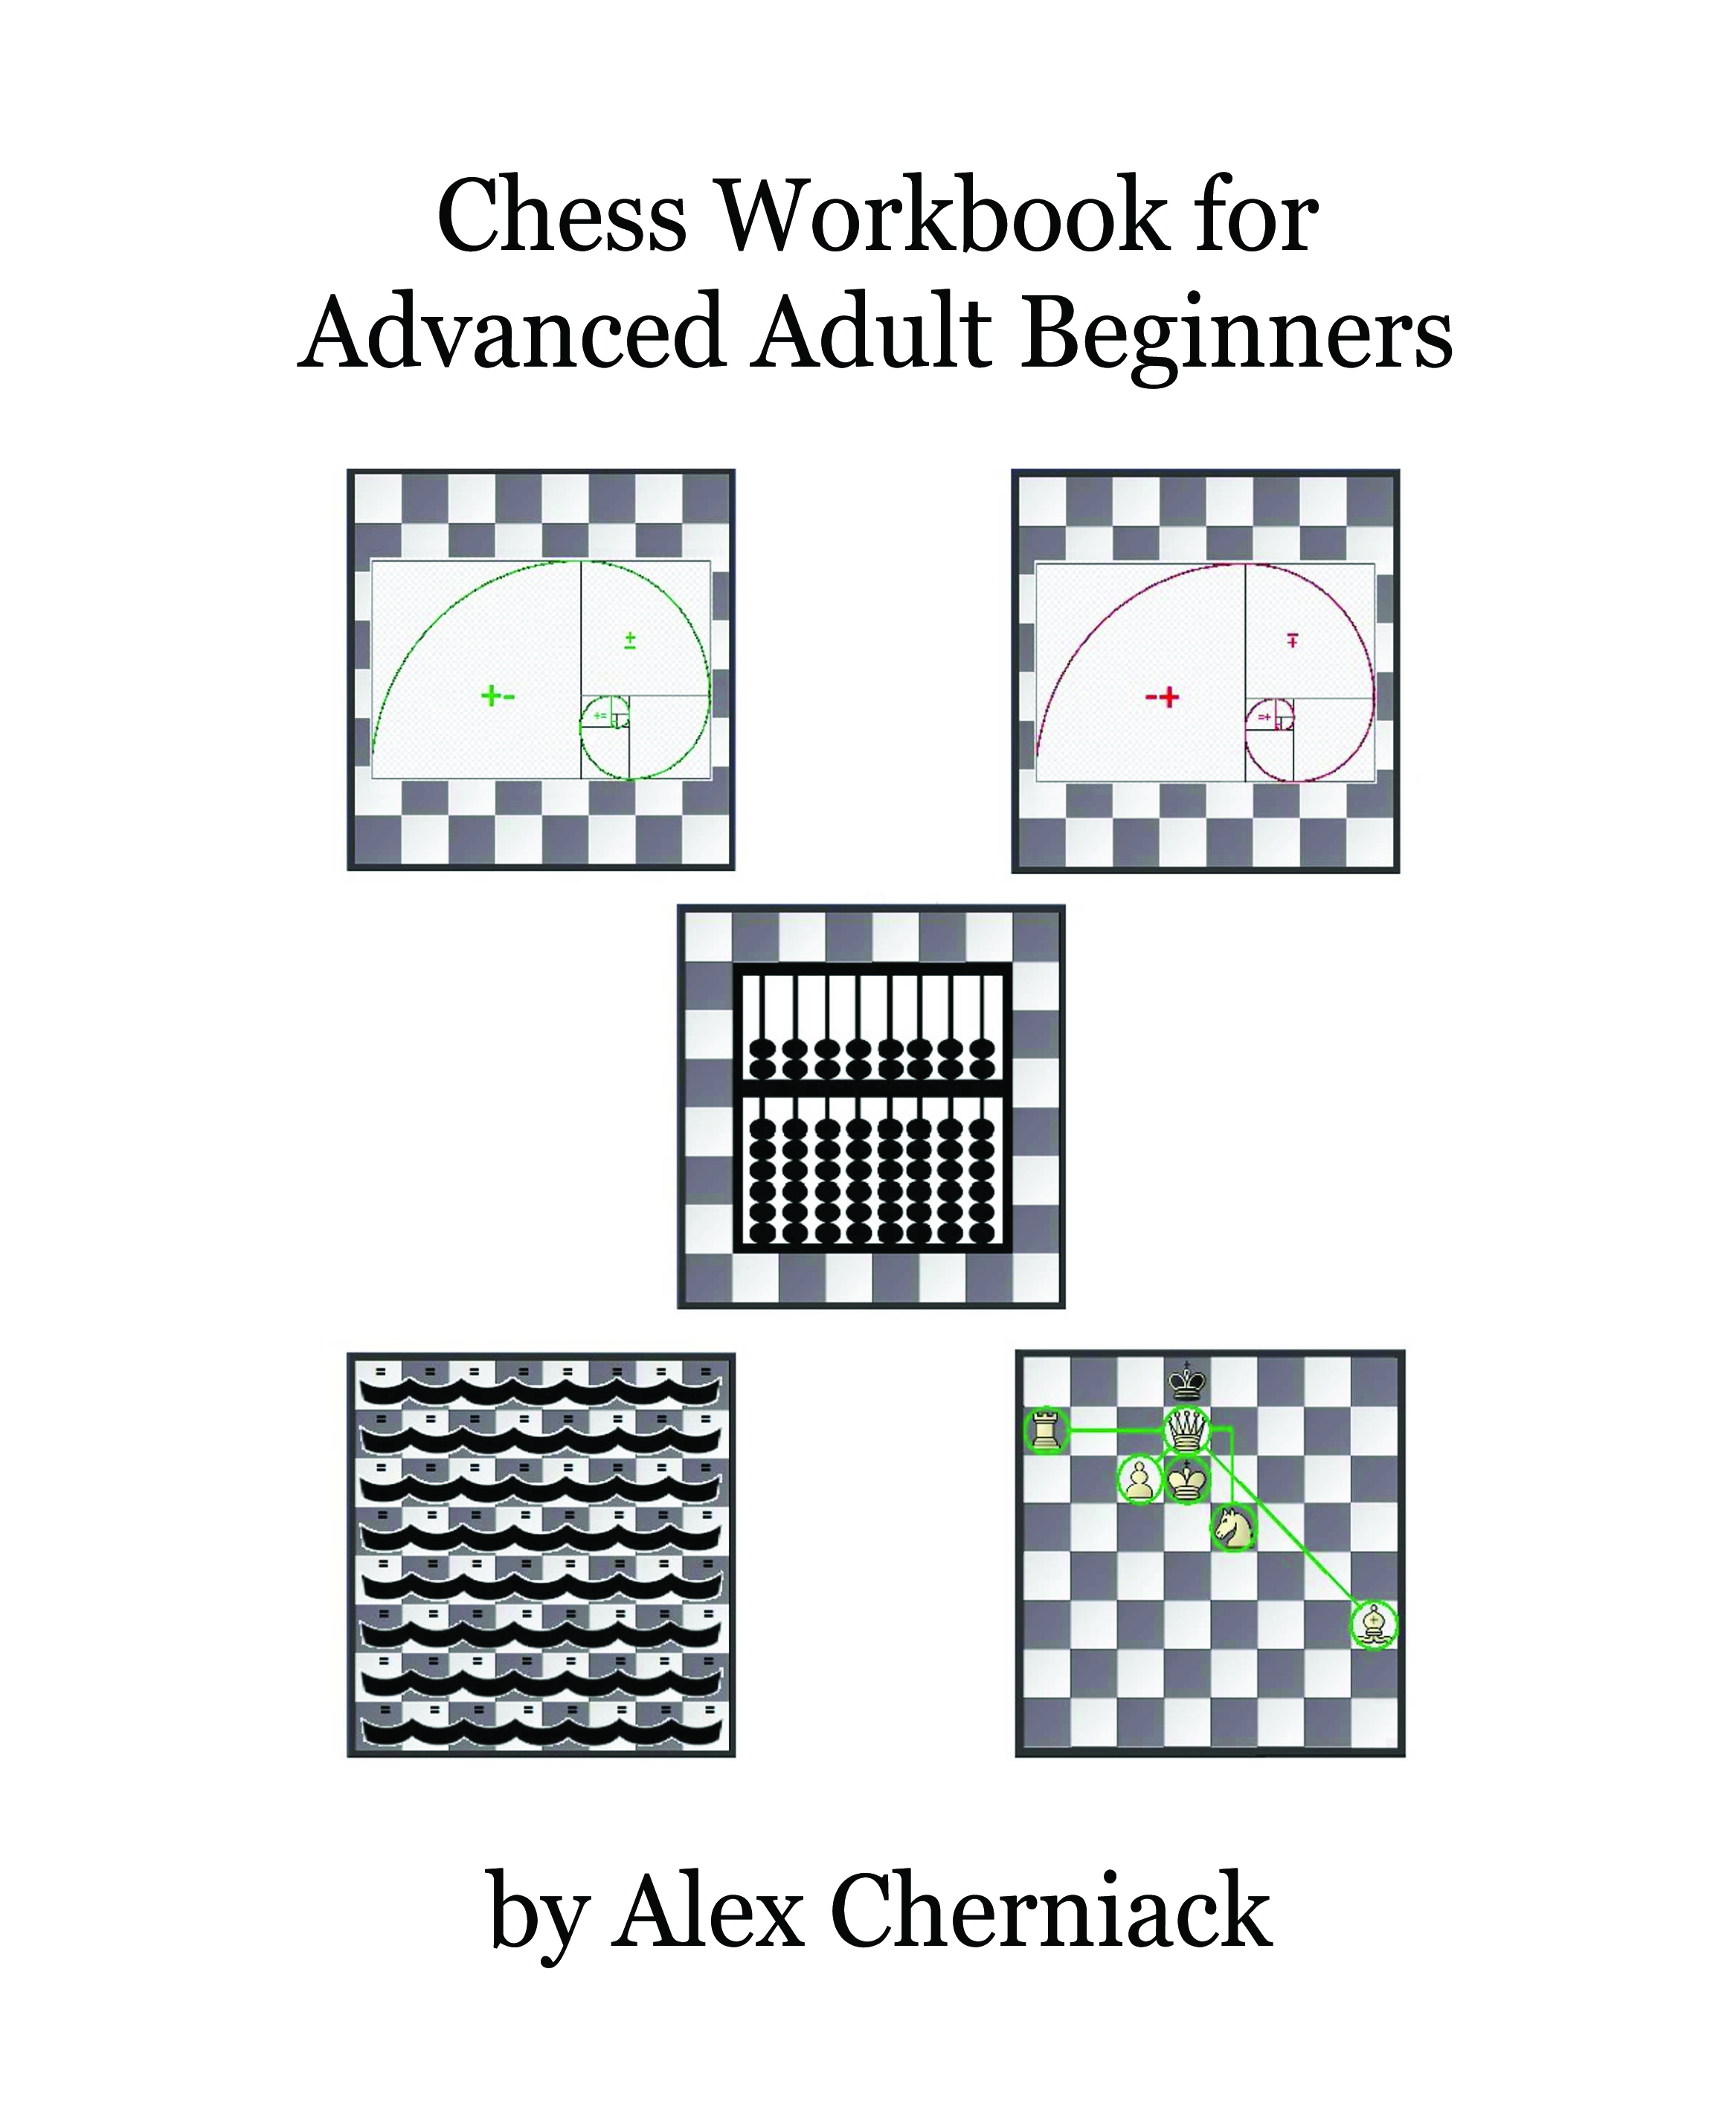 Chess Workbook for Advanced Adult Beginners